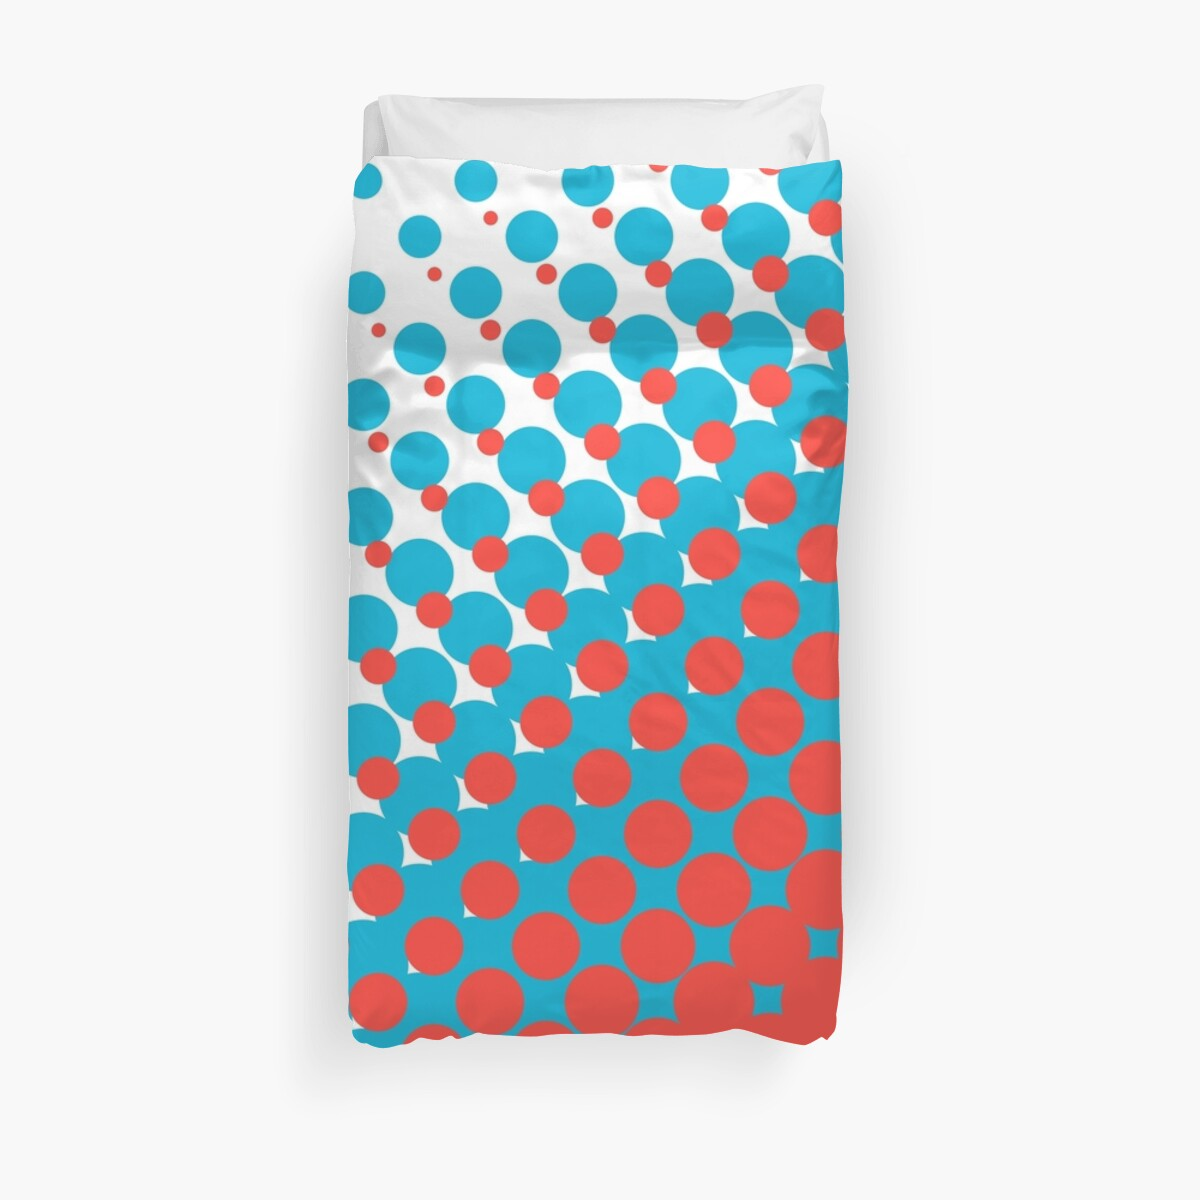 Blue and red halftone pattern by IonCannon